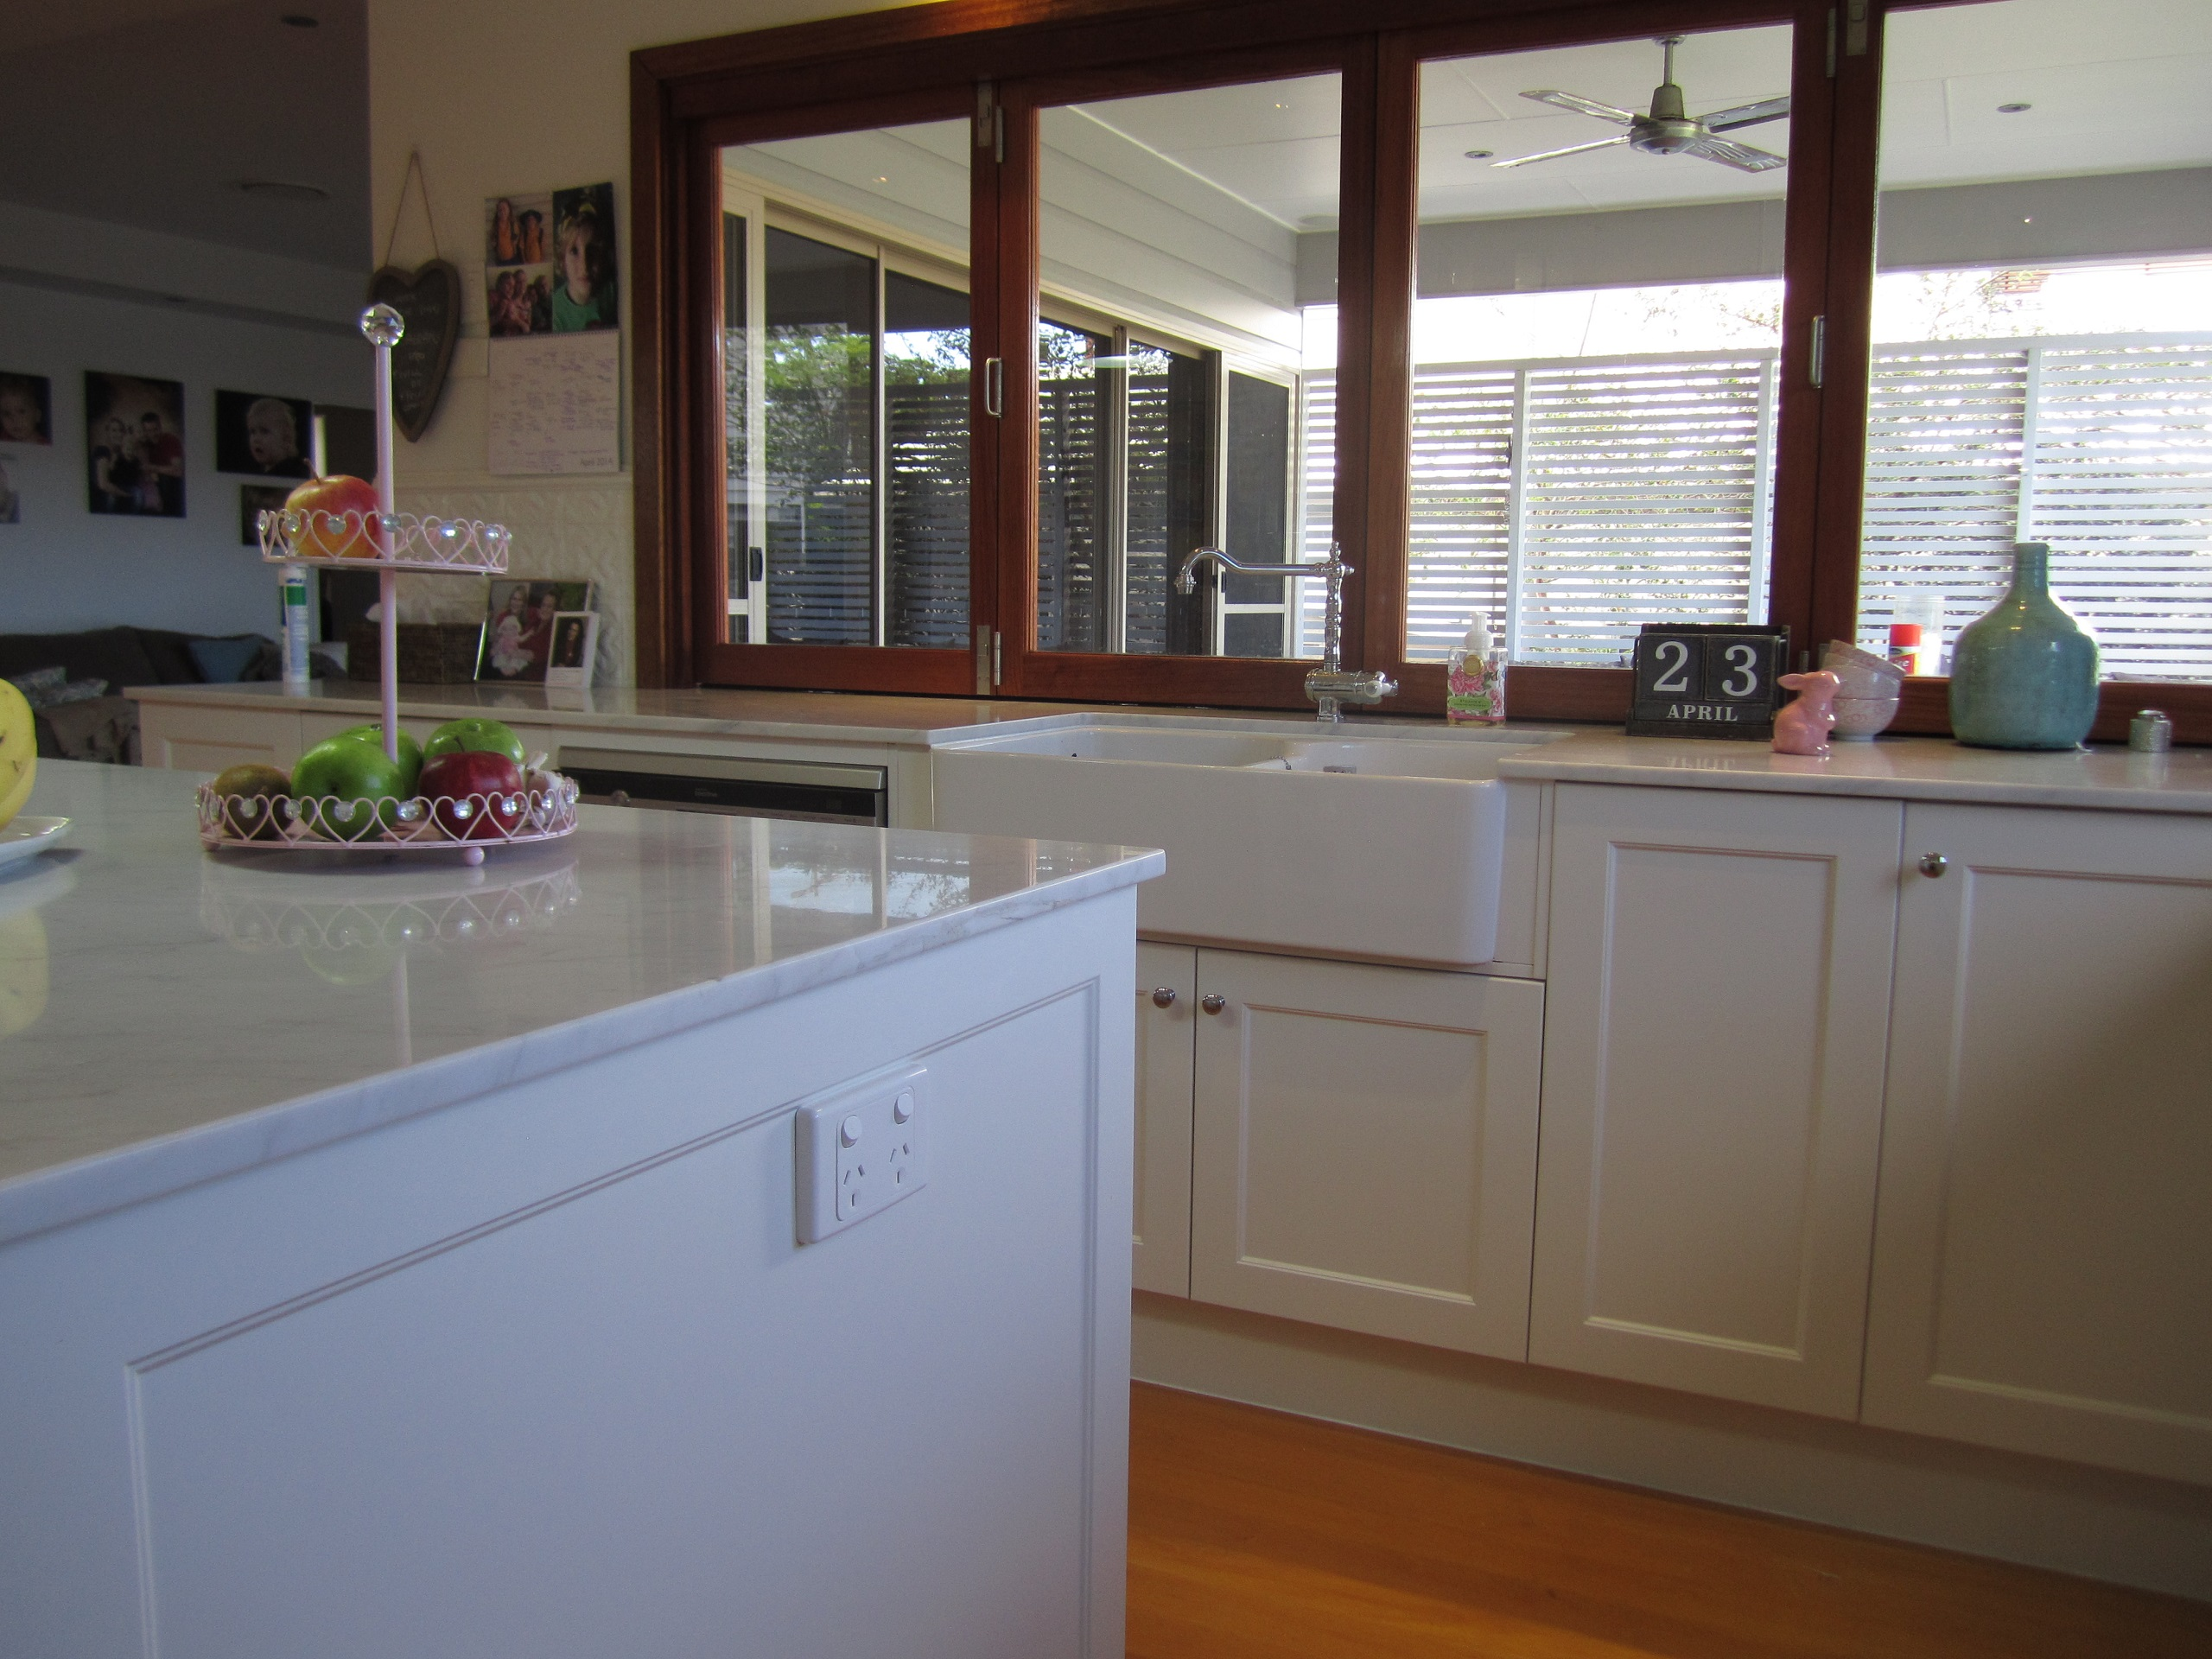 Uncategorized Brisbane Kitchen Design brisbane kitchen design garate graceville traditional kitchenrenovation 12 jpg 12